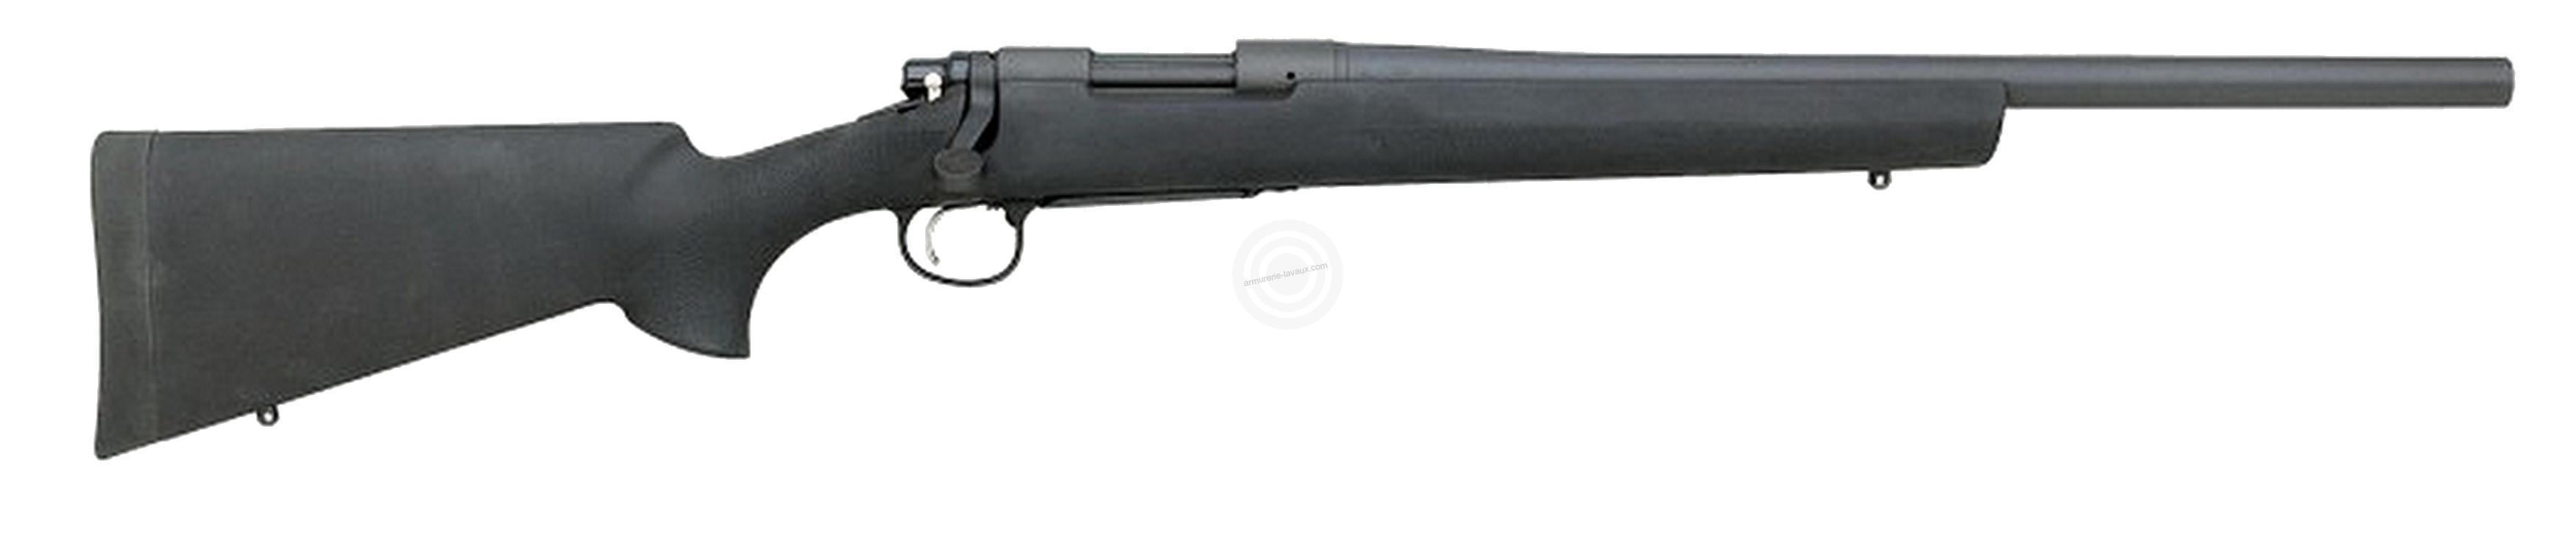 REMINGTON 700 SPS TACTICAL cal.308 win